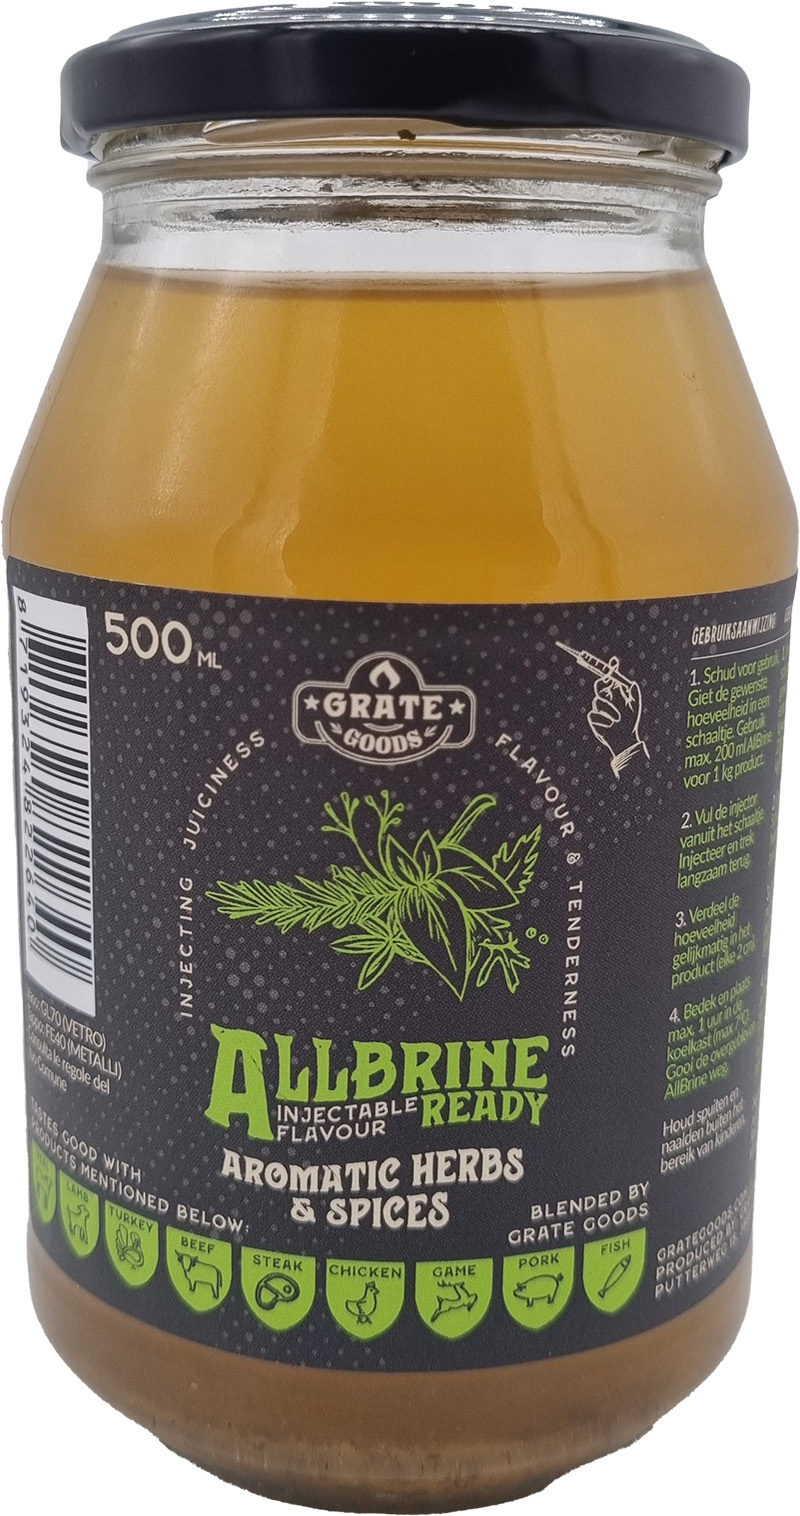 Grate Goods AllBrine Ready Aromatic Herbs&Spices 500ml